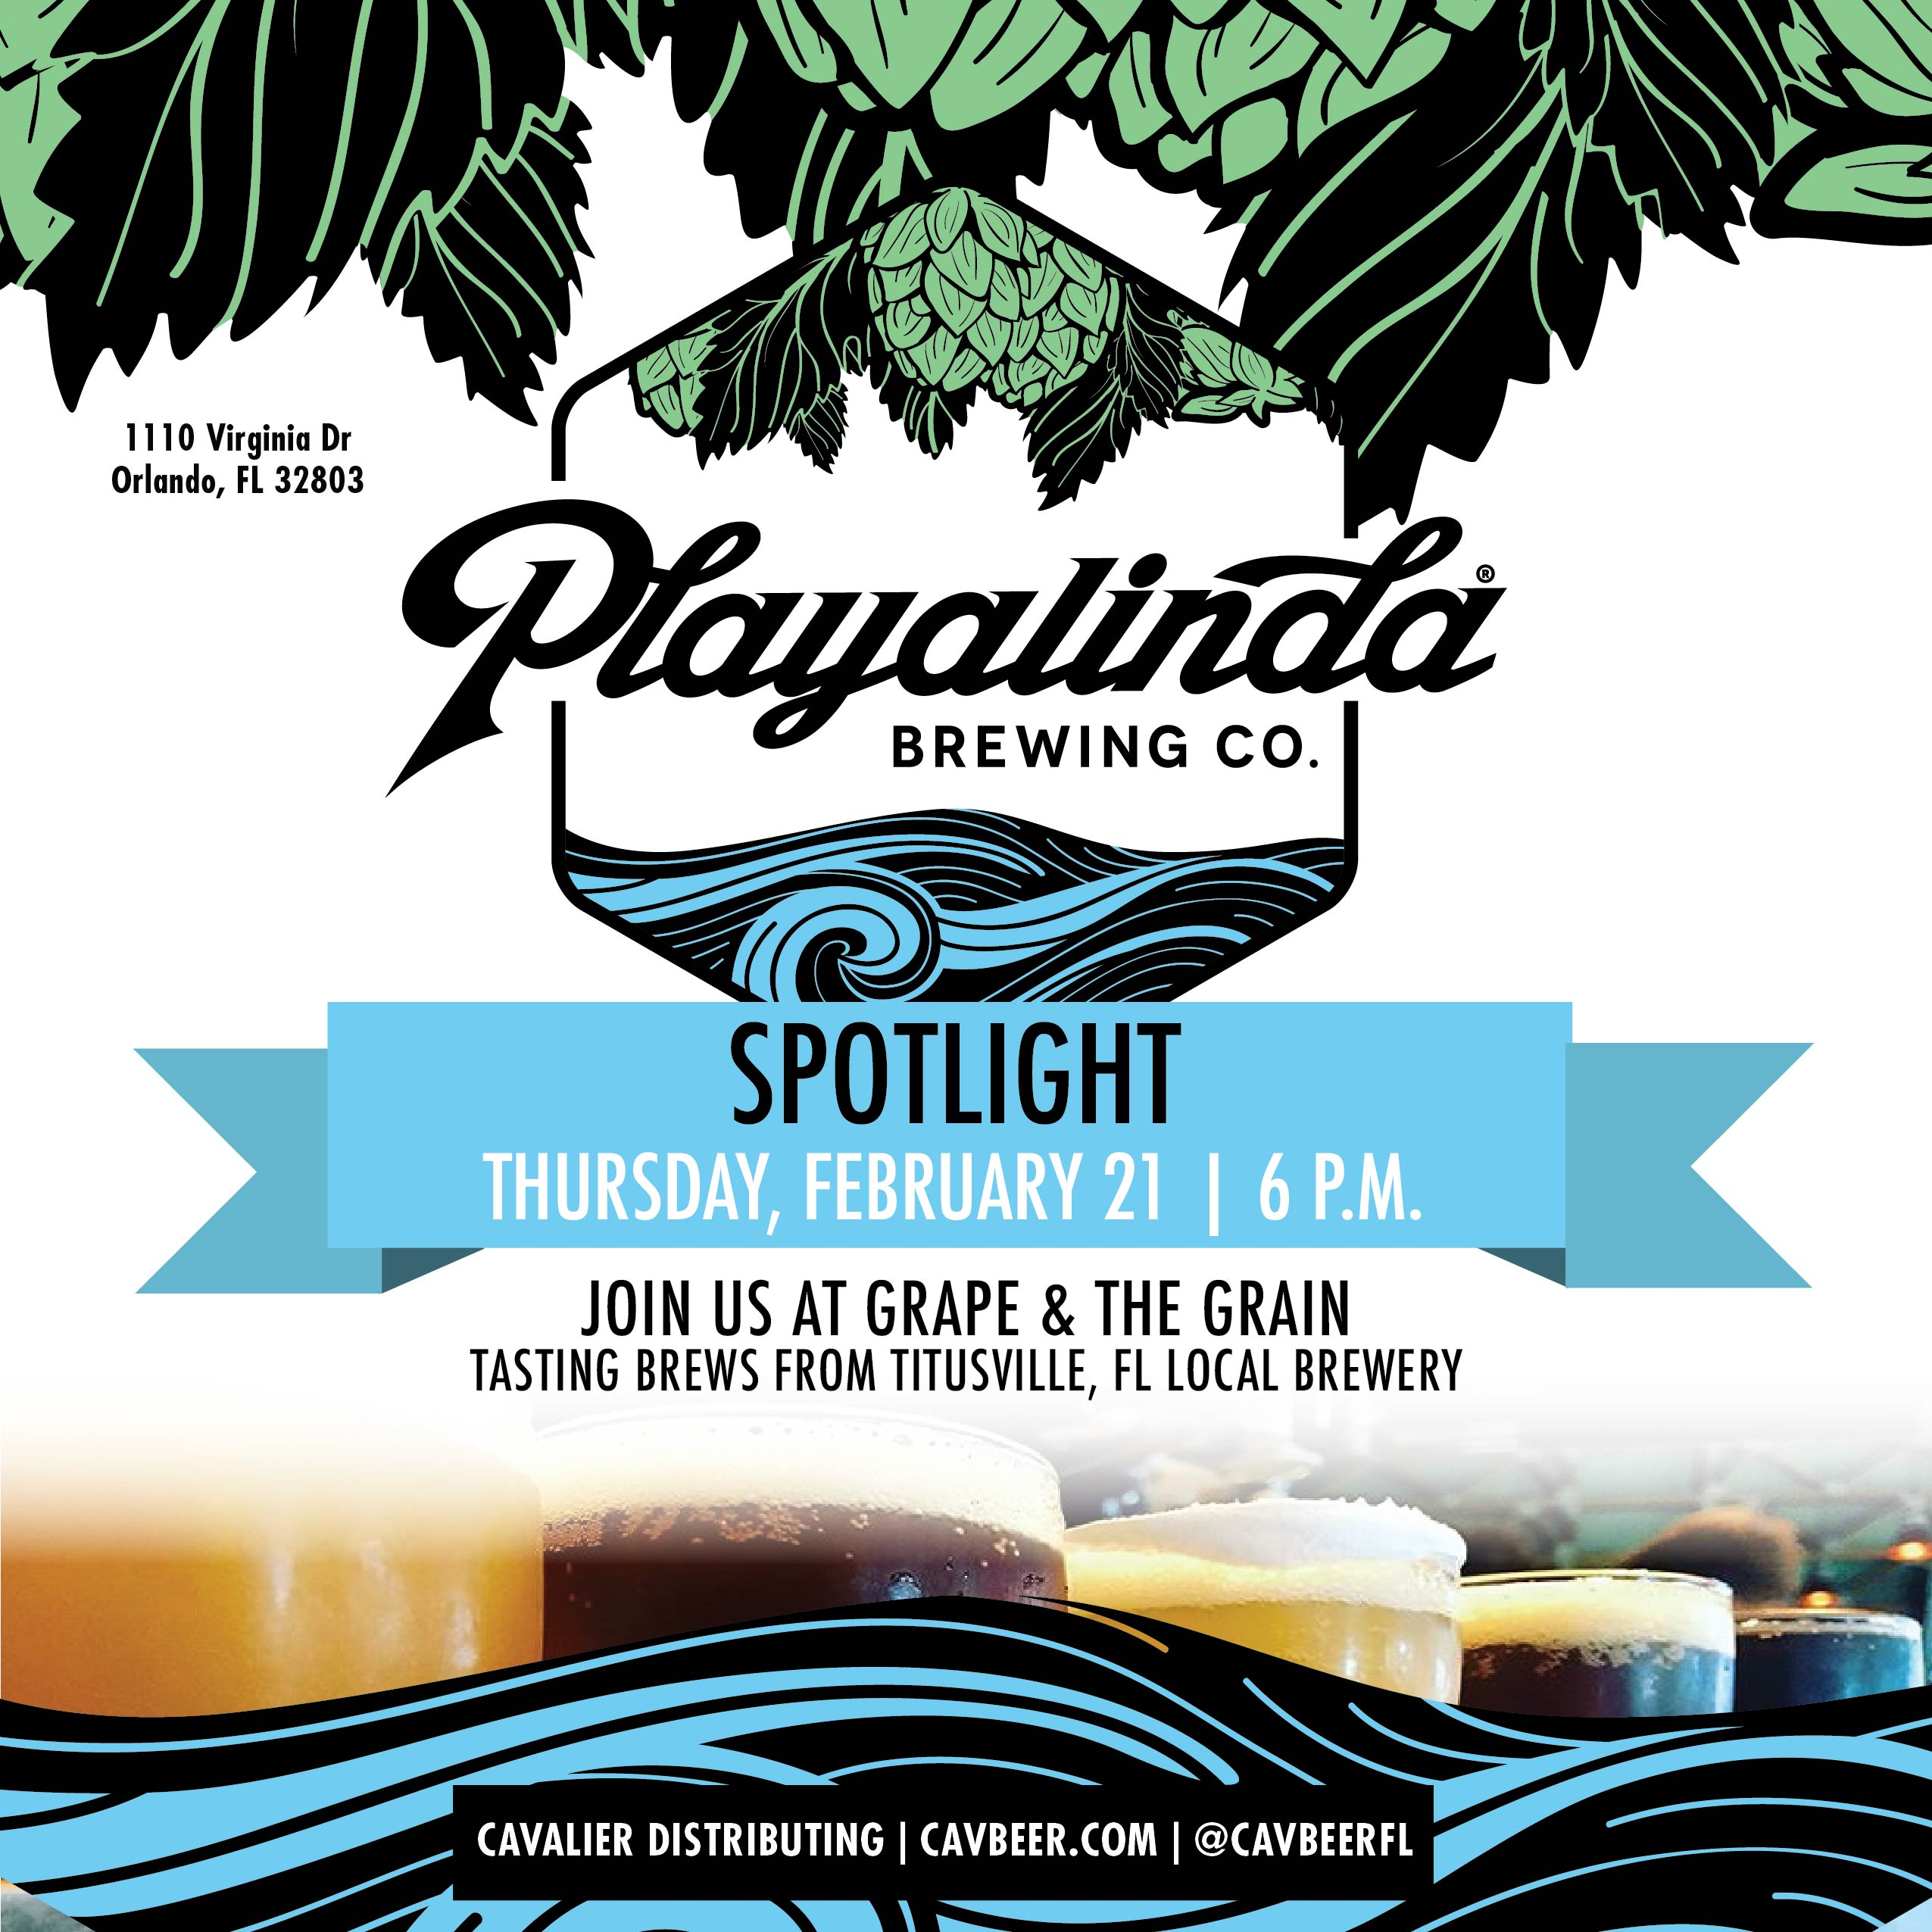 Playalinda Brewing Co. @ Grape & The Grain